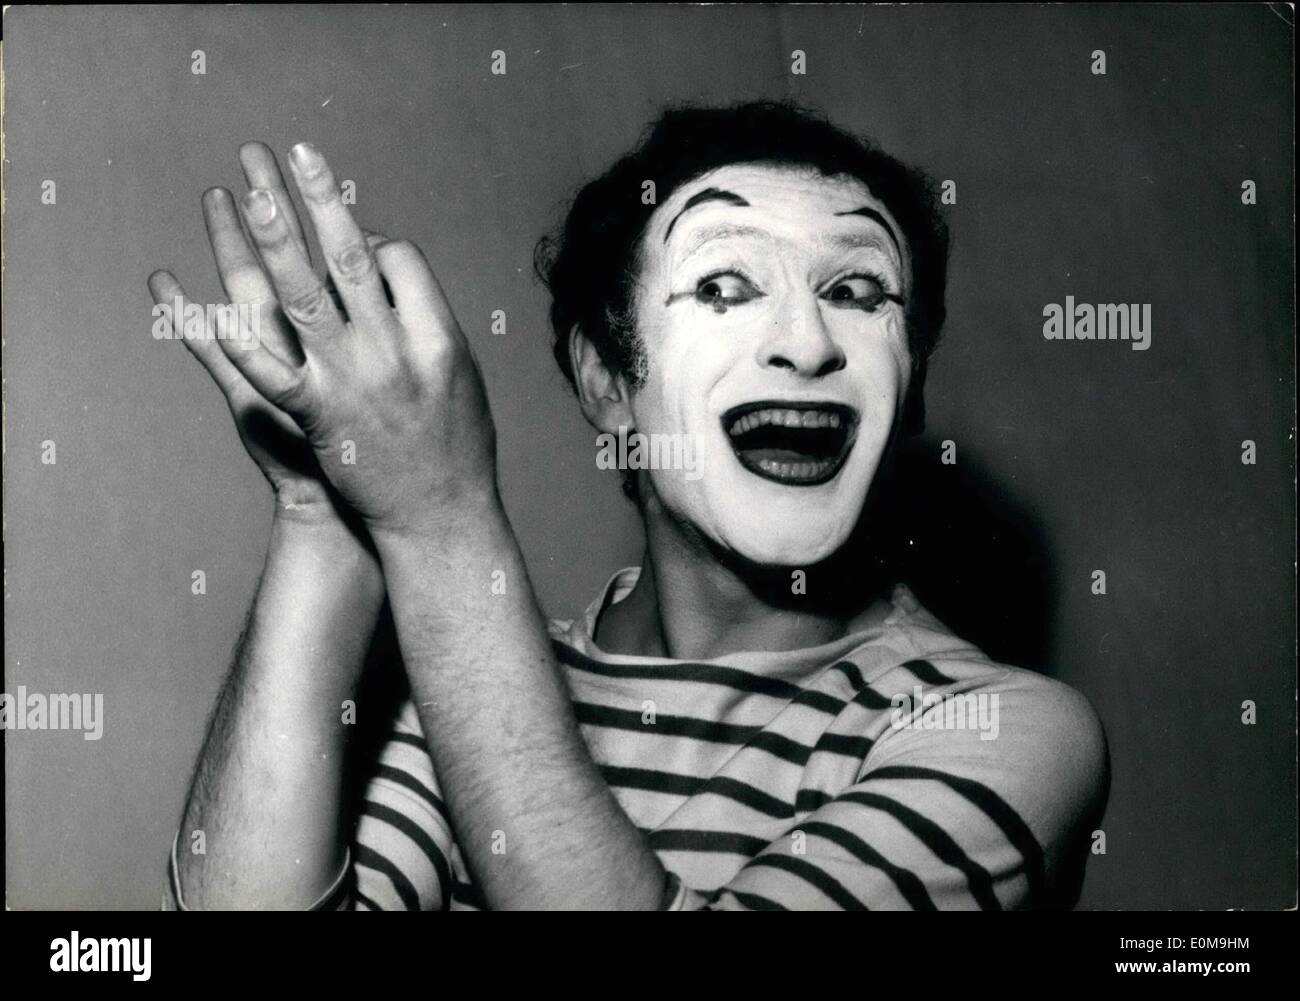 Apr. 04, 1954 - Famous French Mime back to Paris: After a successful tour in America and japan, Marcel Marceau, the famous French Mime, and his company are back in Paris. Marcel Marceau rehearsing for his new show shortly to start at the theatre Ambigu, Paris - Stock Image